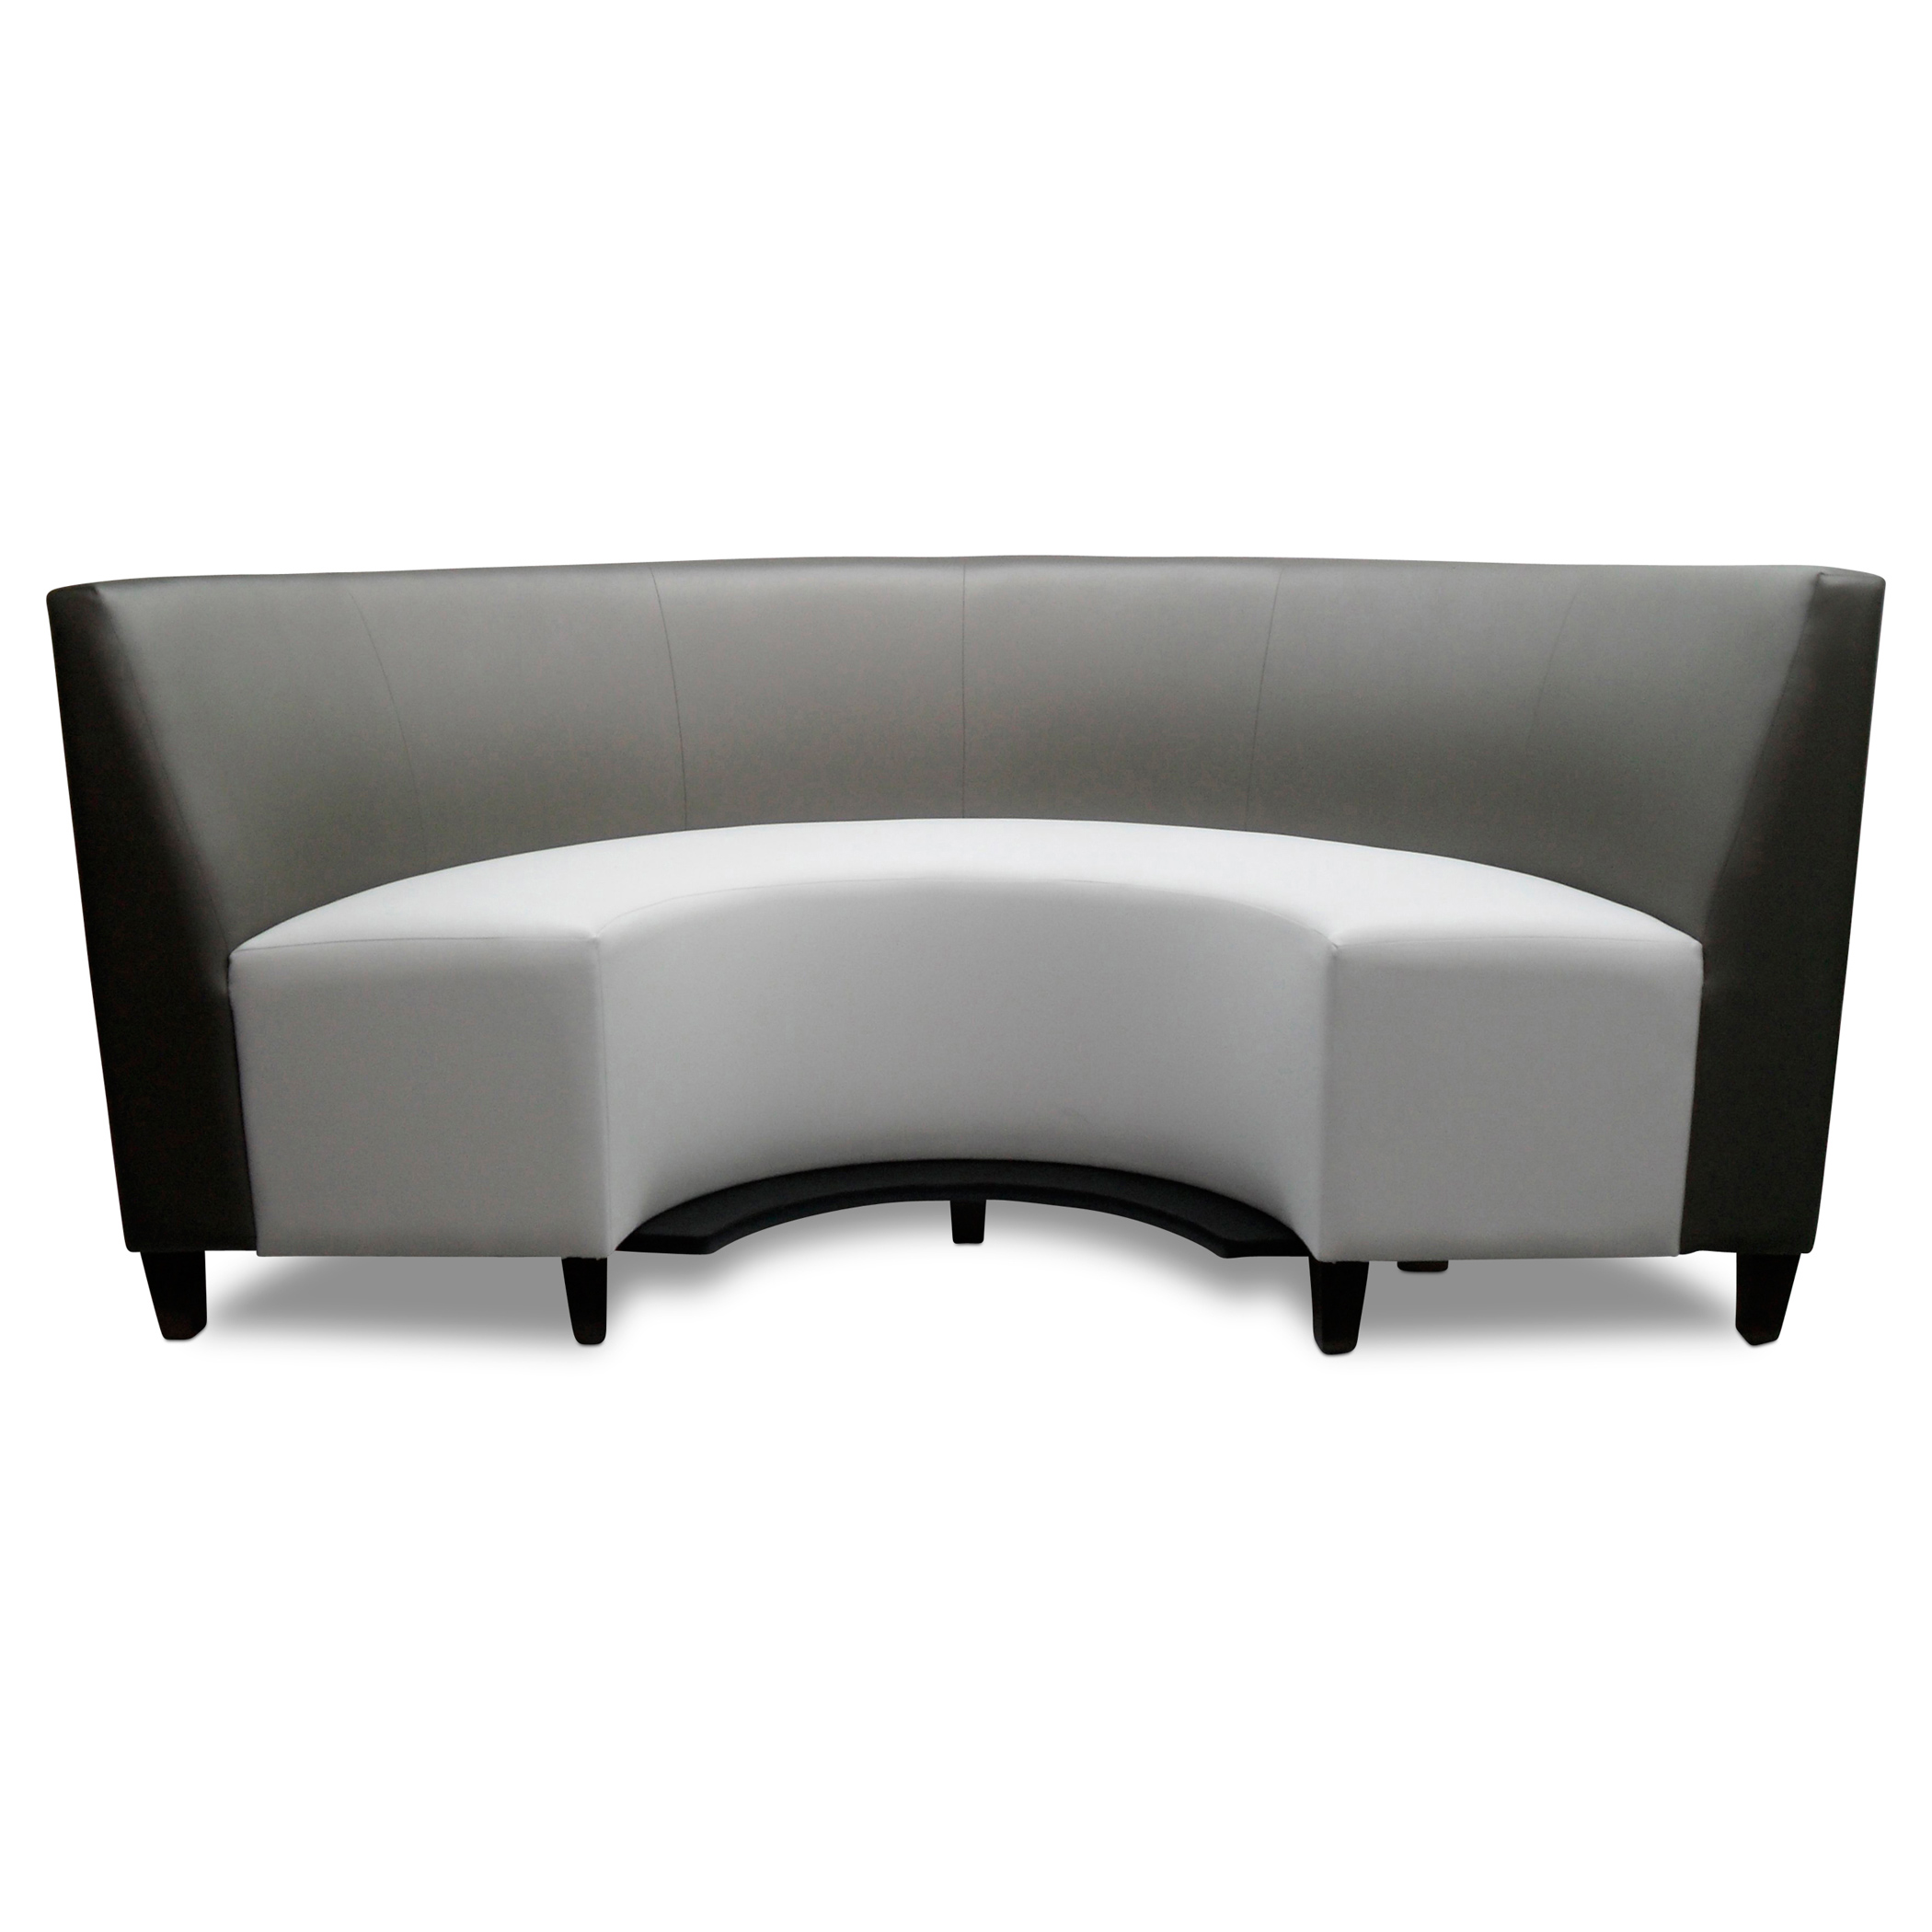 Counter Height Seat